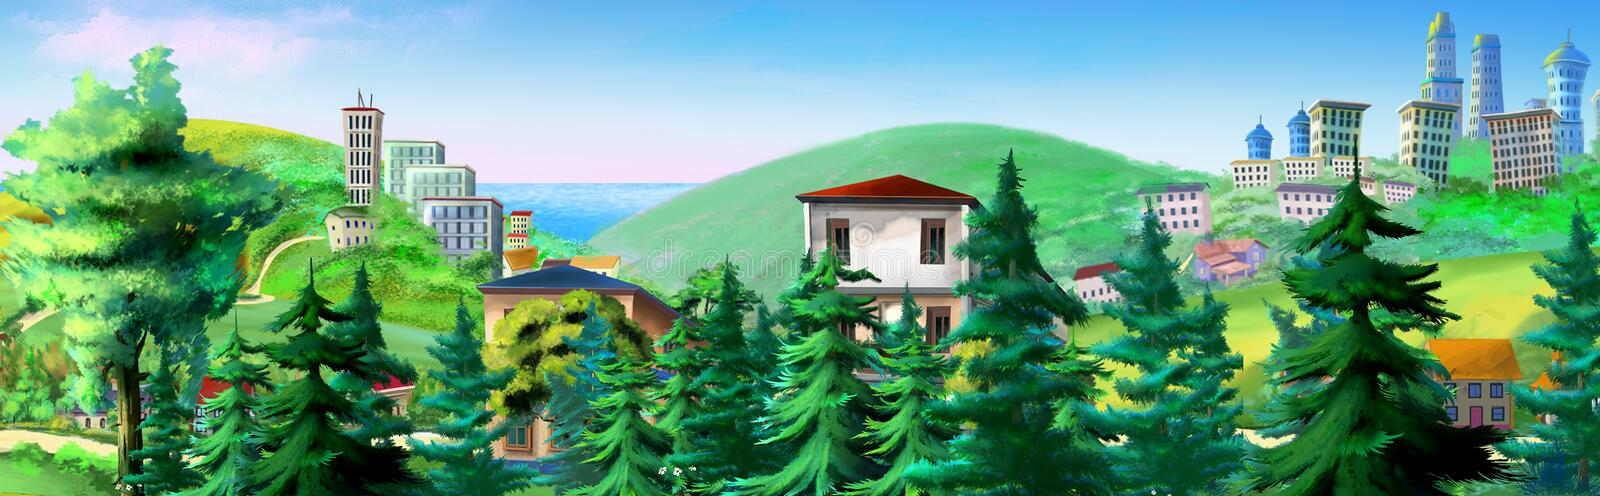 Rural Landscape with Spruce Trees and Buildings on Background royalty free illustration